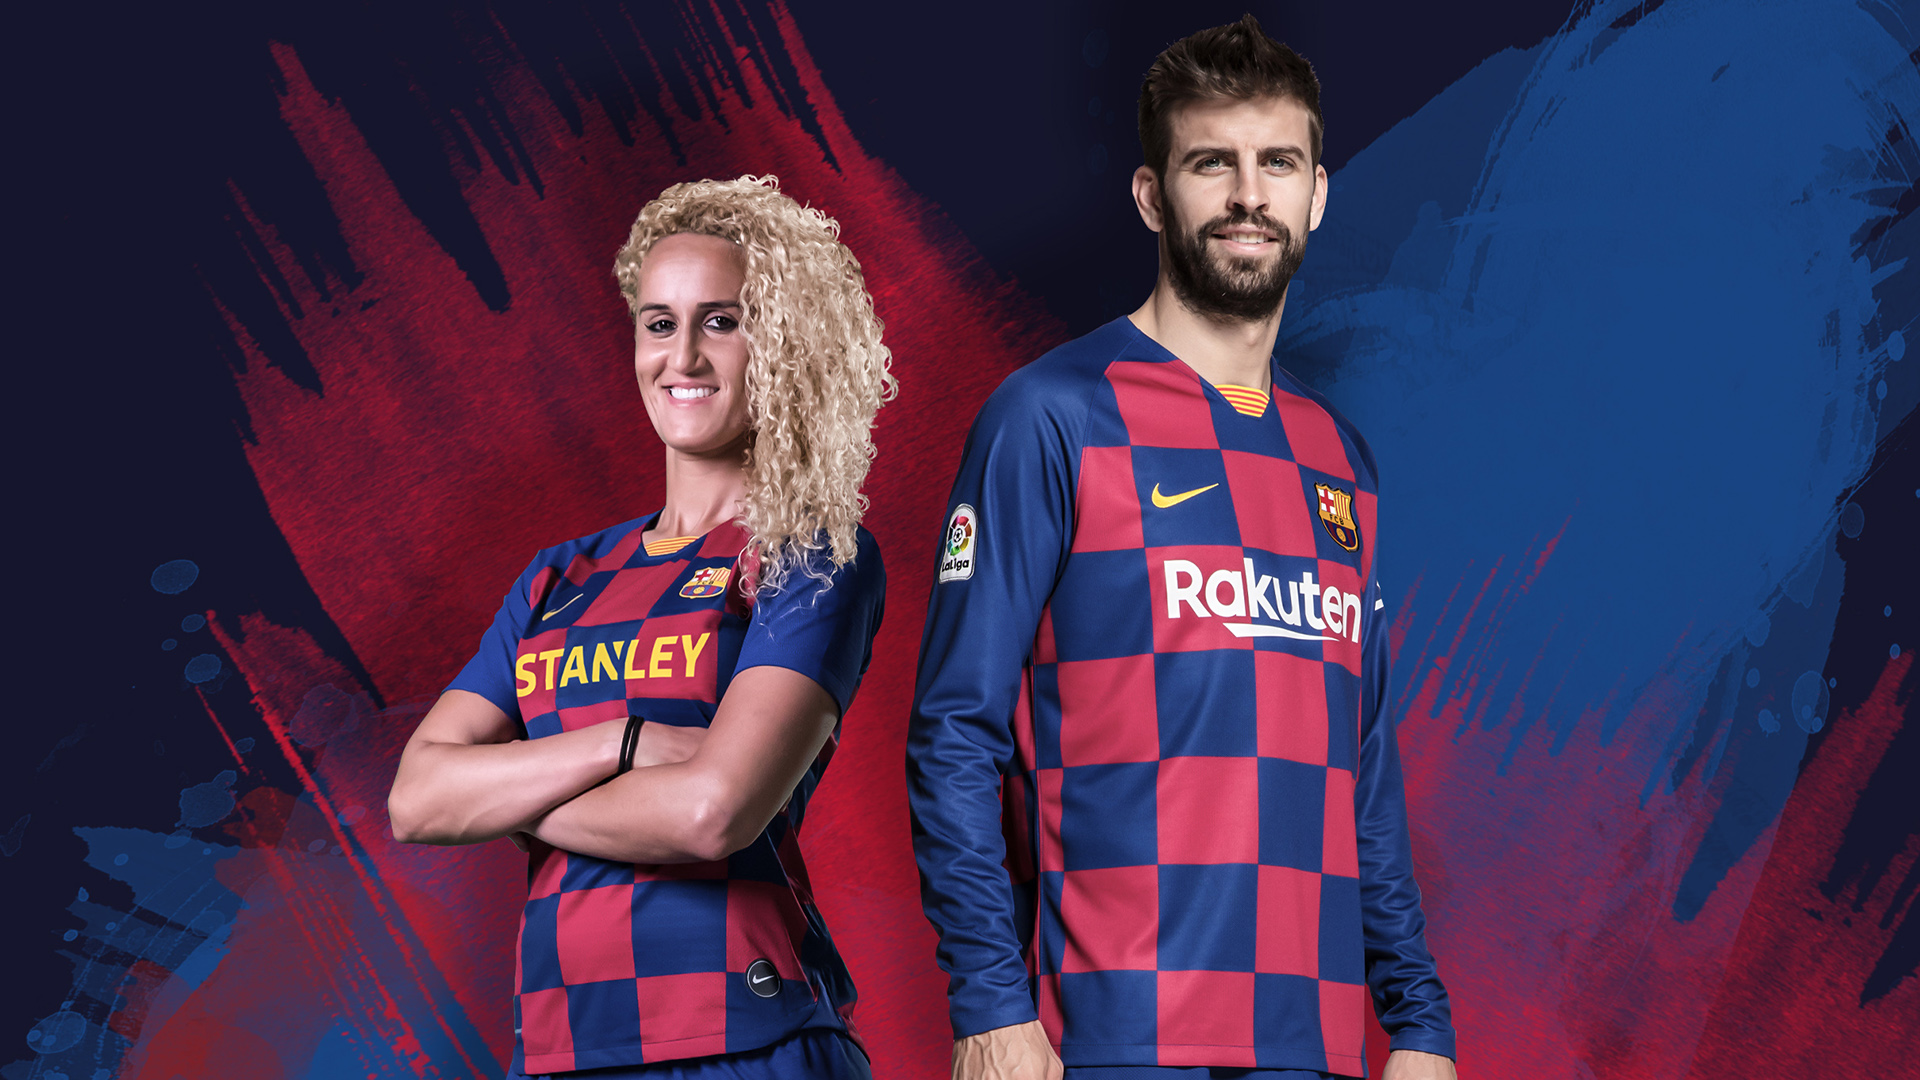 Barcelona 2019-20 Kit: Liga Giants Change Stripes For